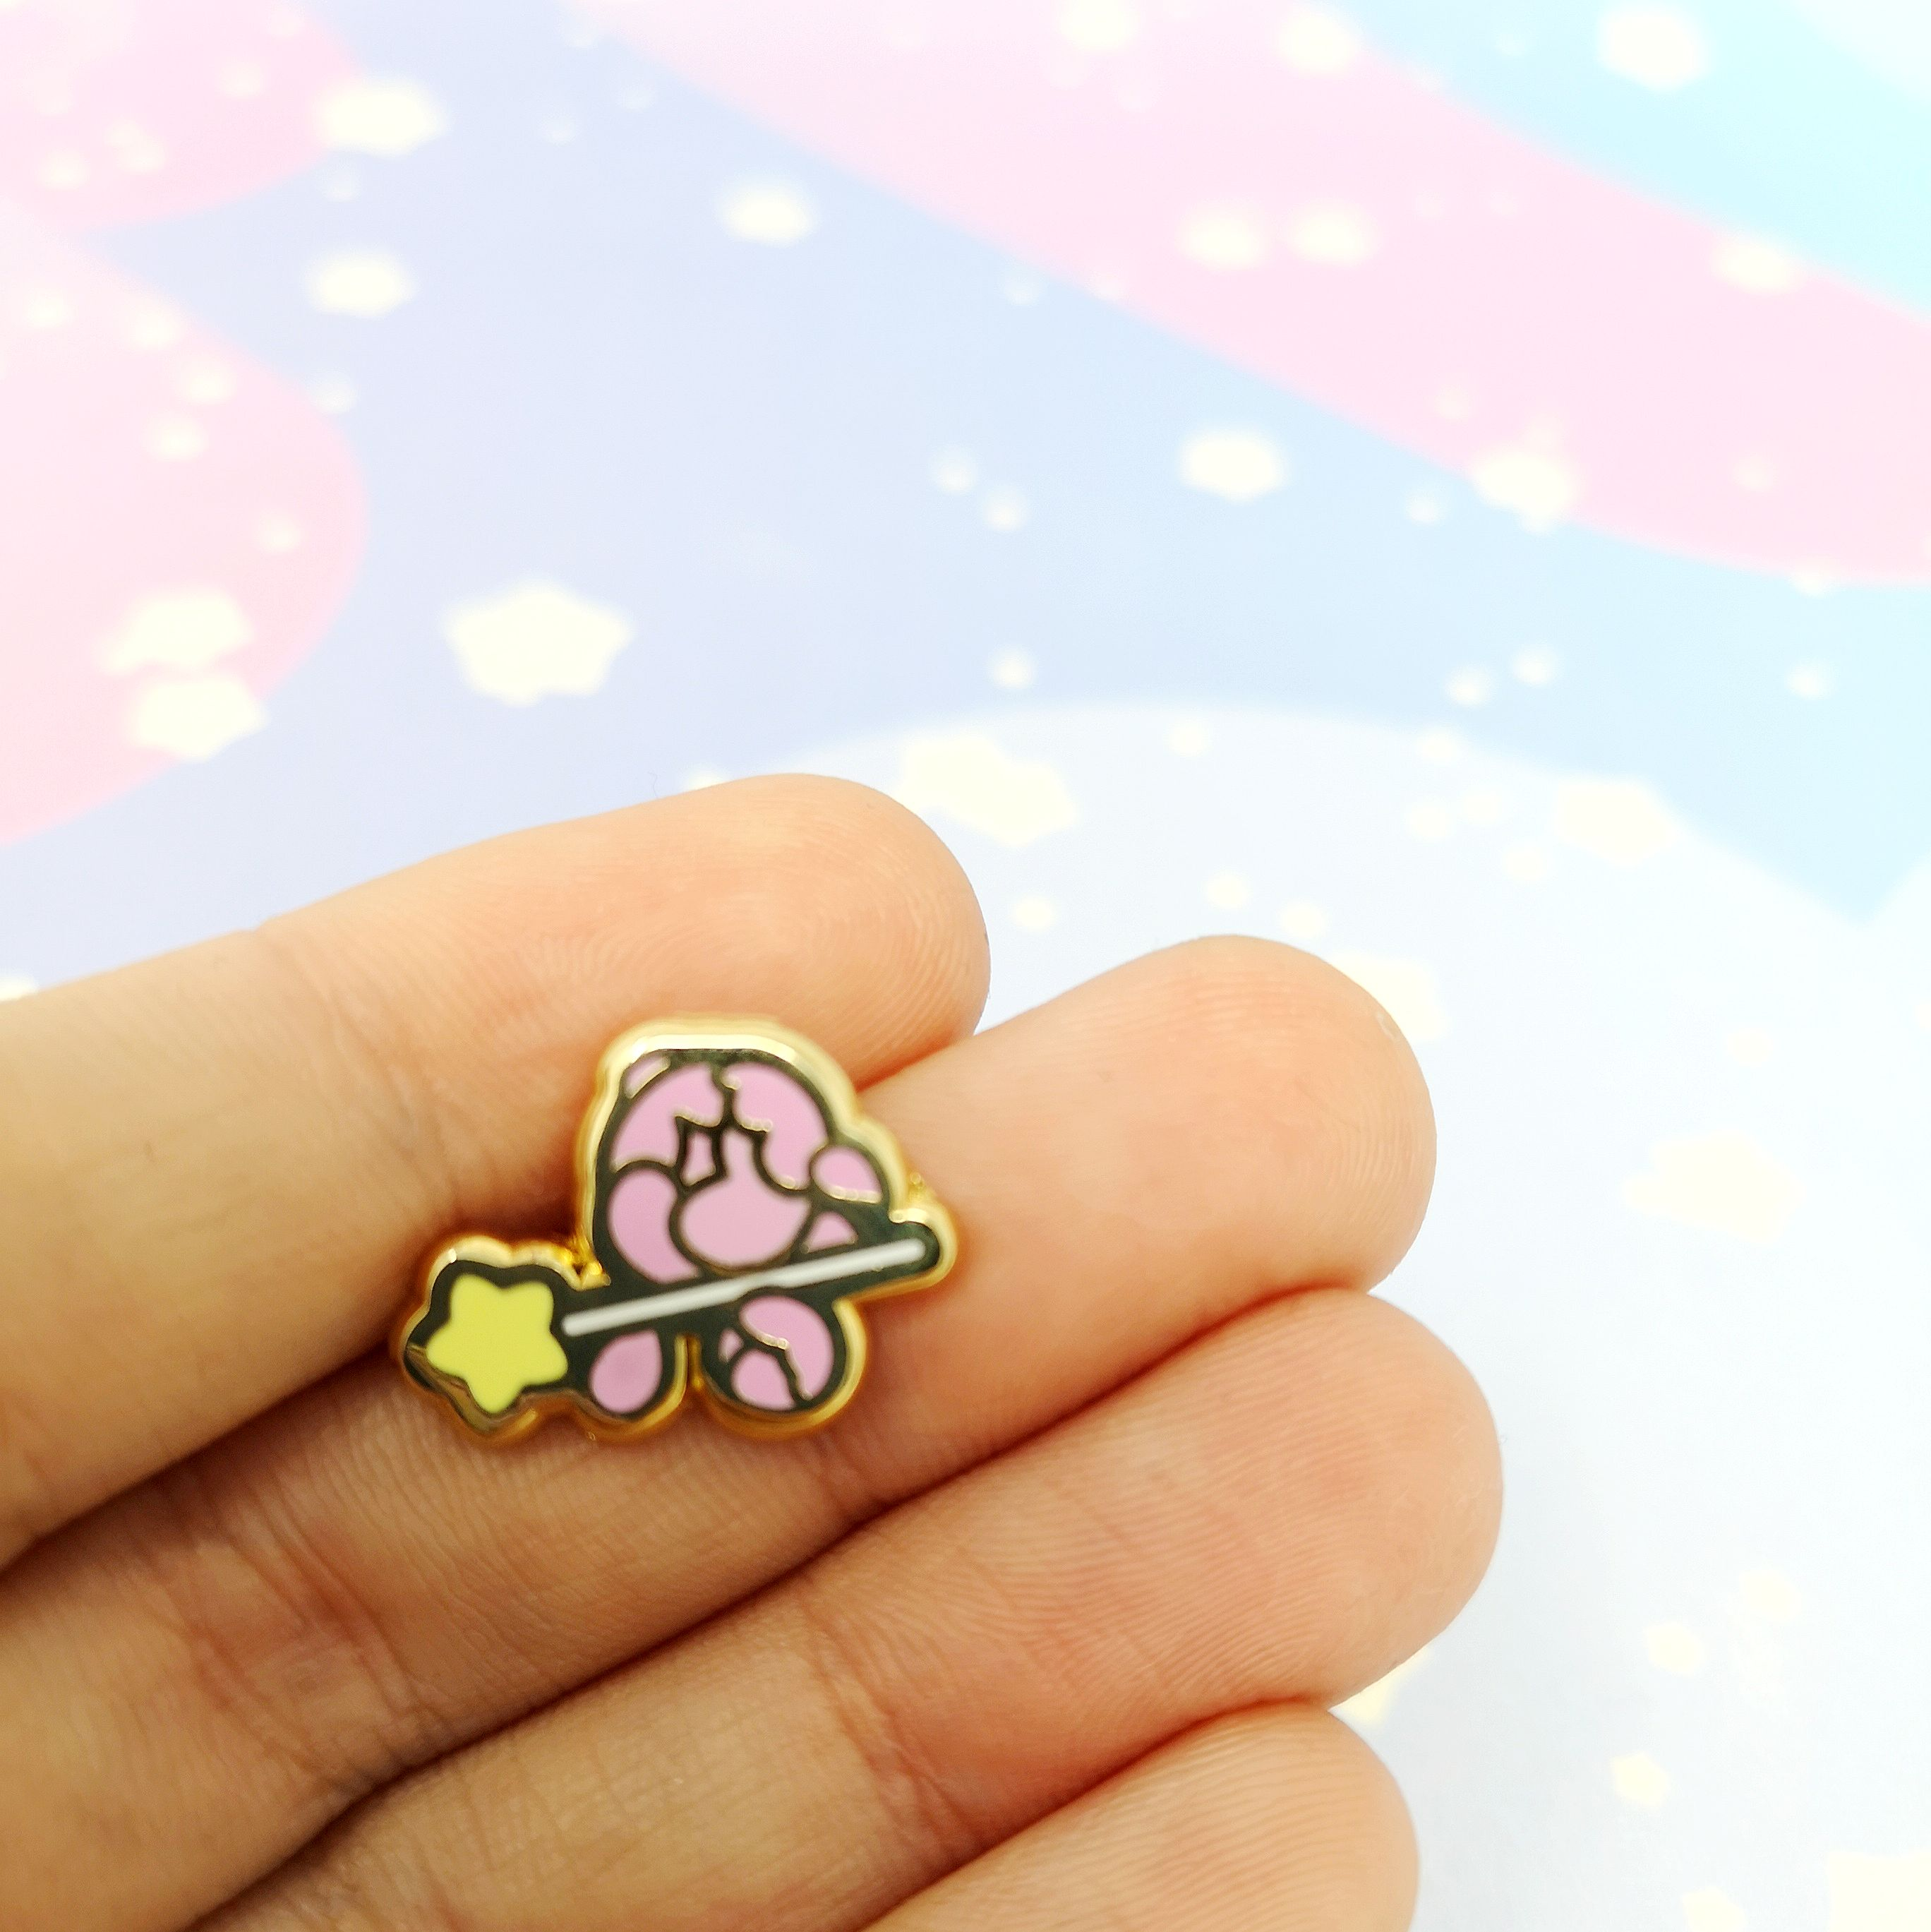 Secret Shop - Nov 2020 - Libra Mini Pin